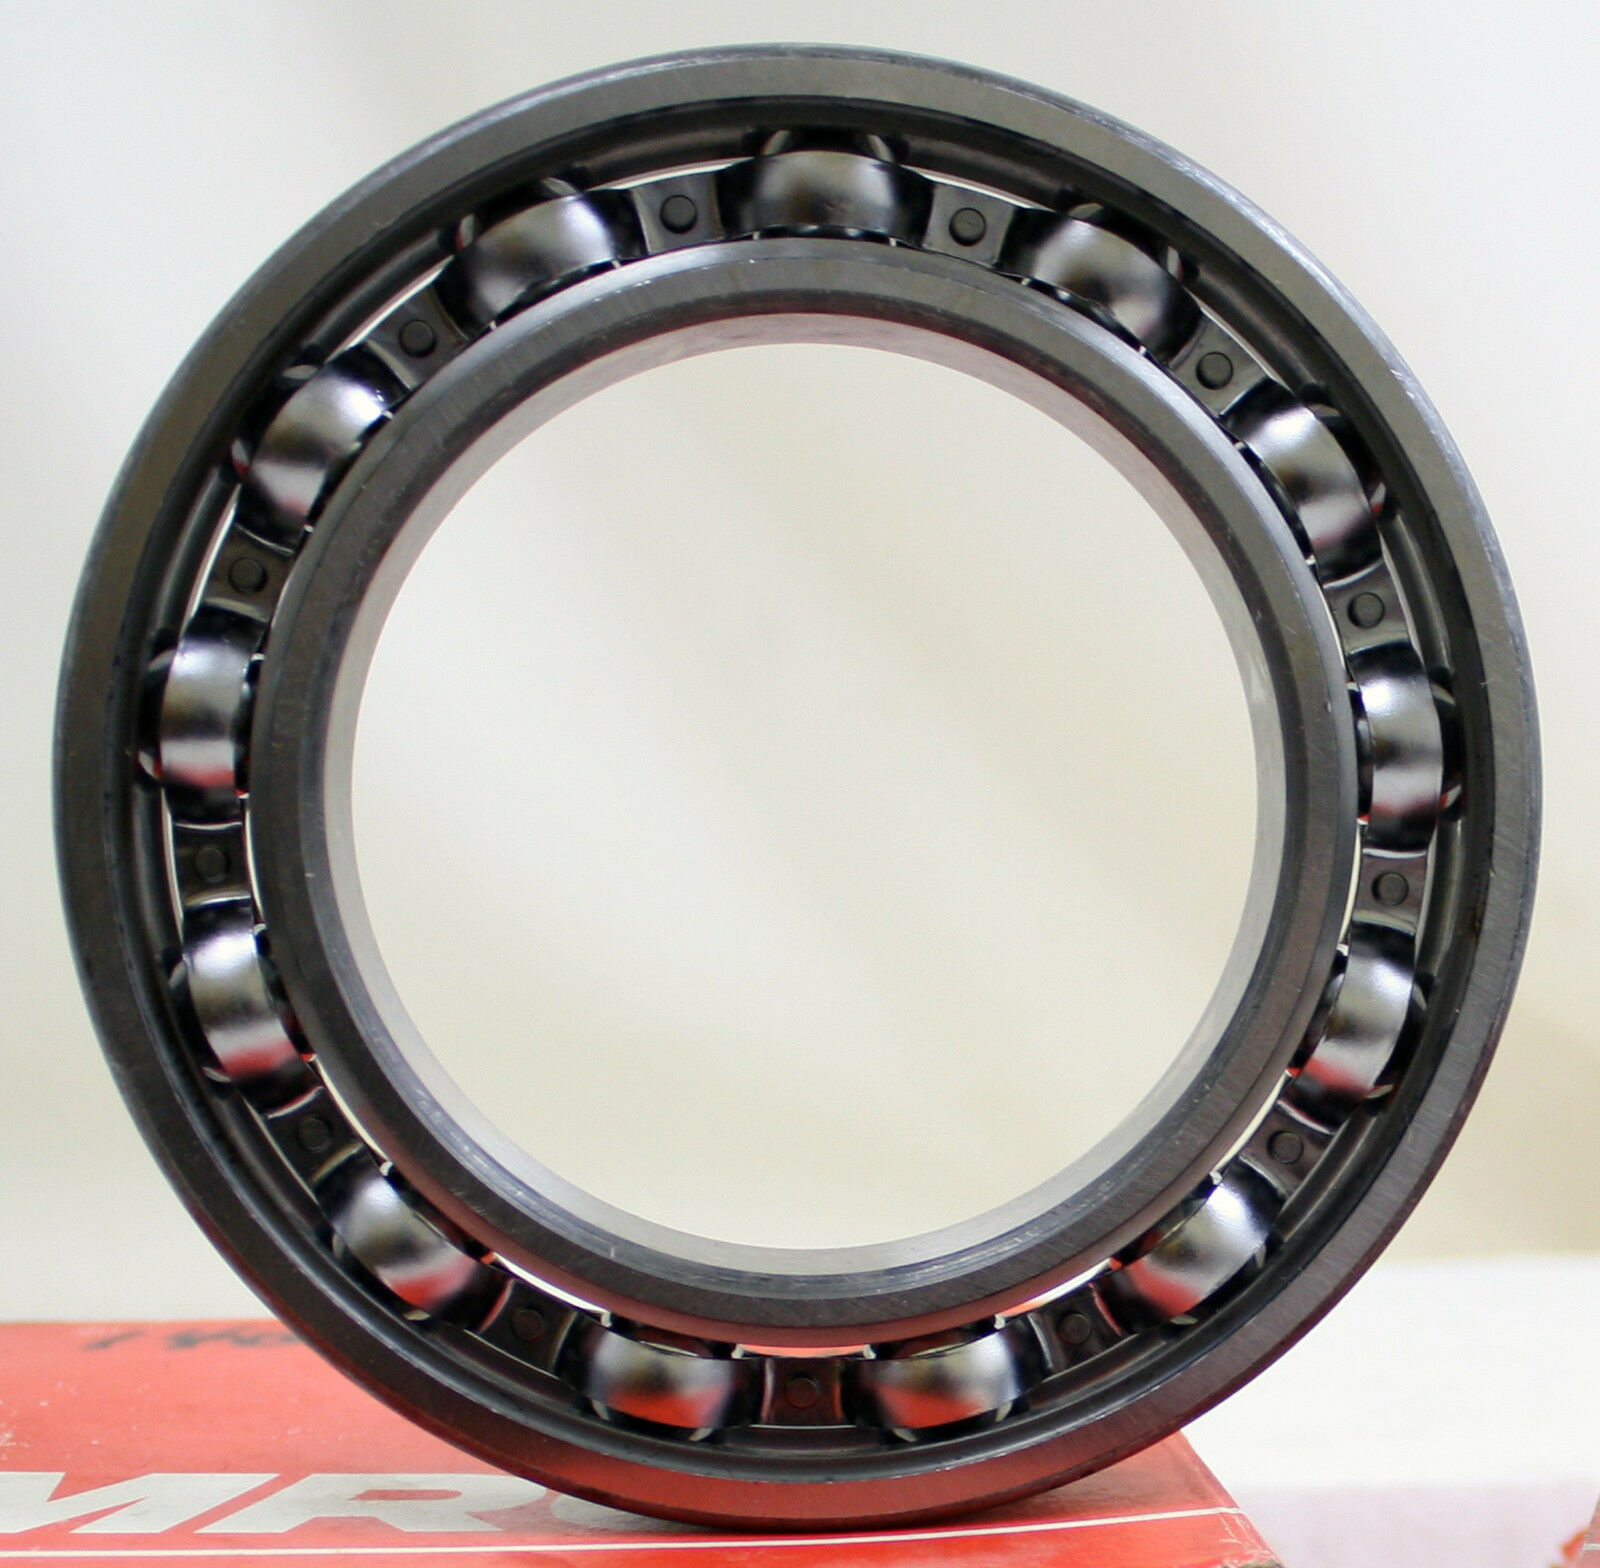 61822-2RS1 Radial Ball Bearing Double Sealed Bore Dia 110mm OD 140mm Width 16mm